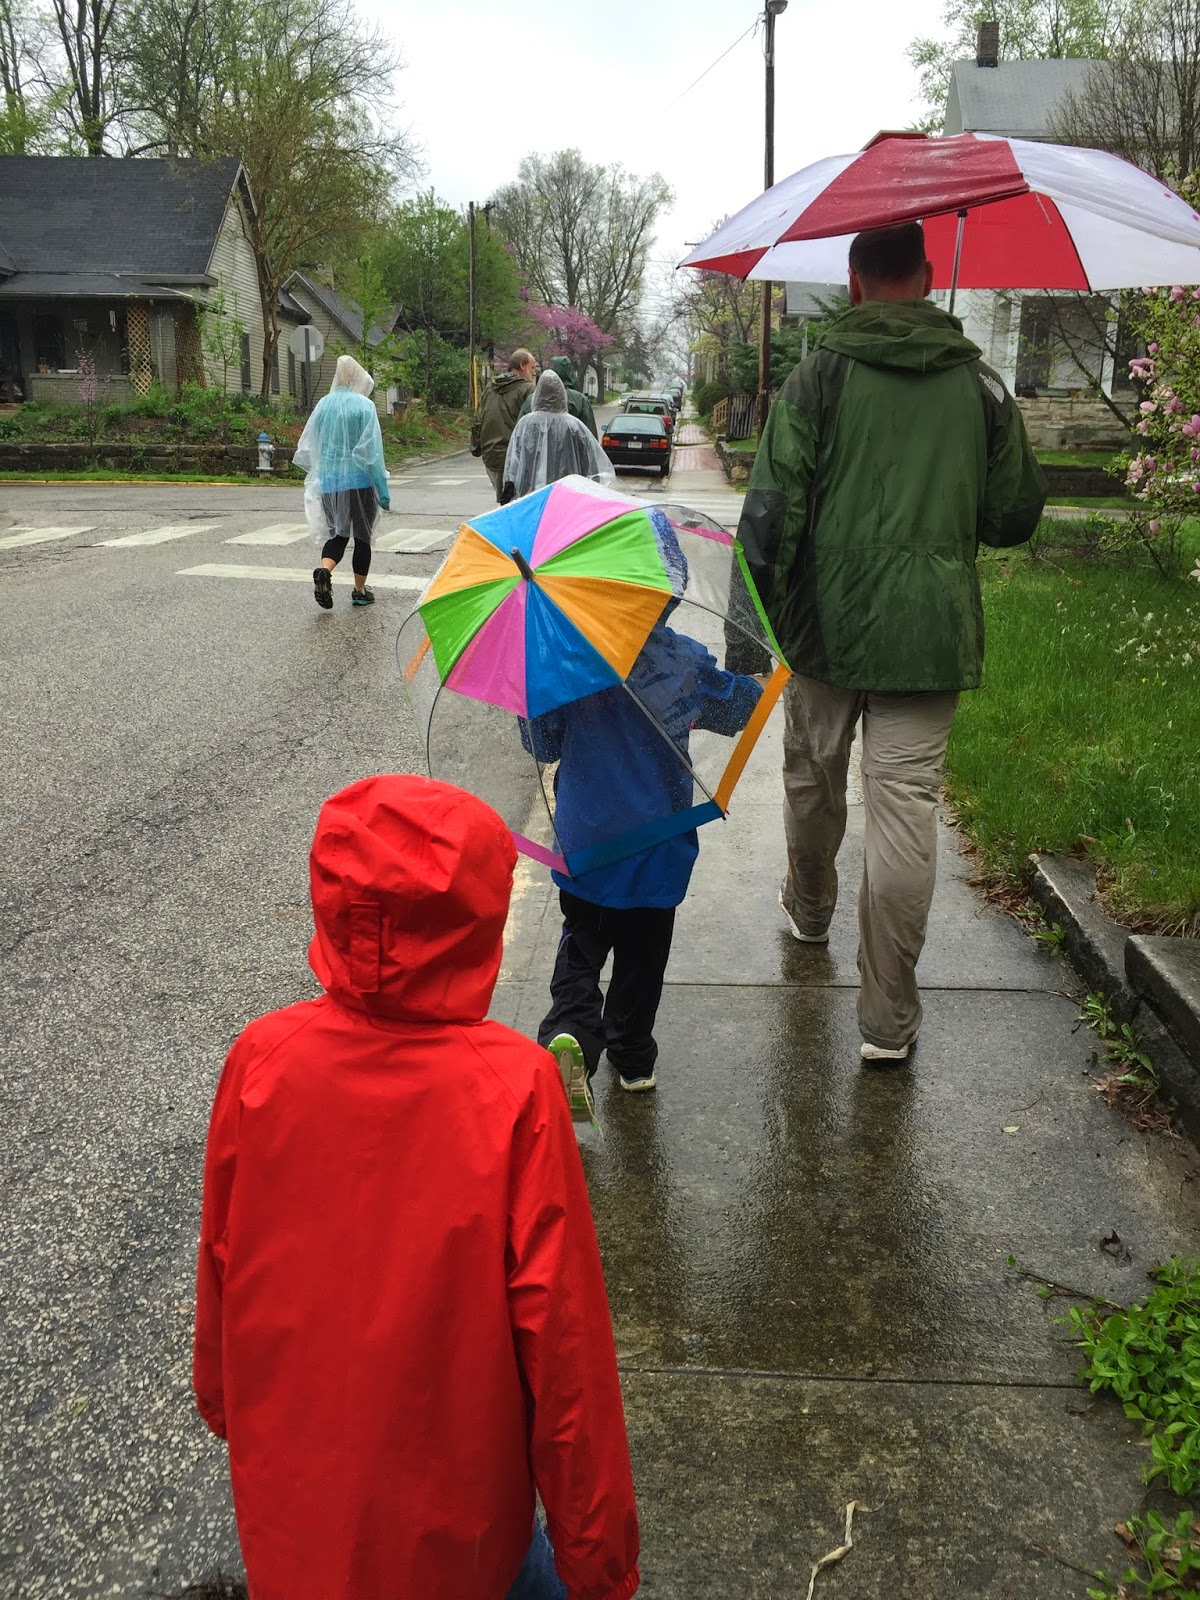 Chris and the boys following the other walk participants in the rain.